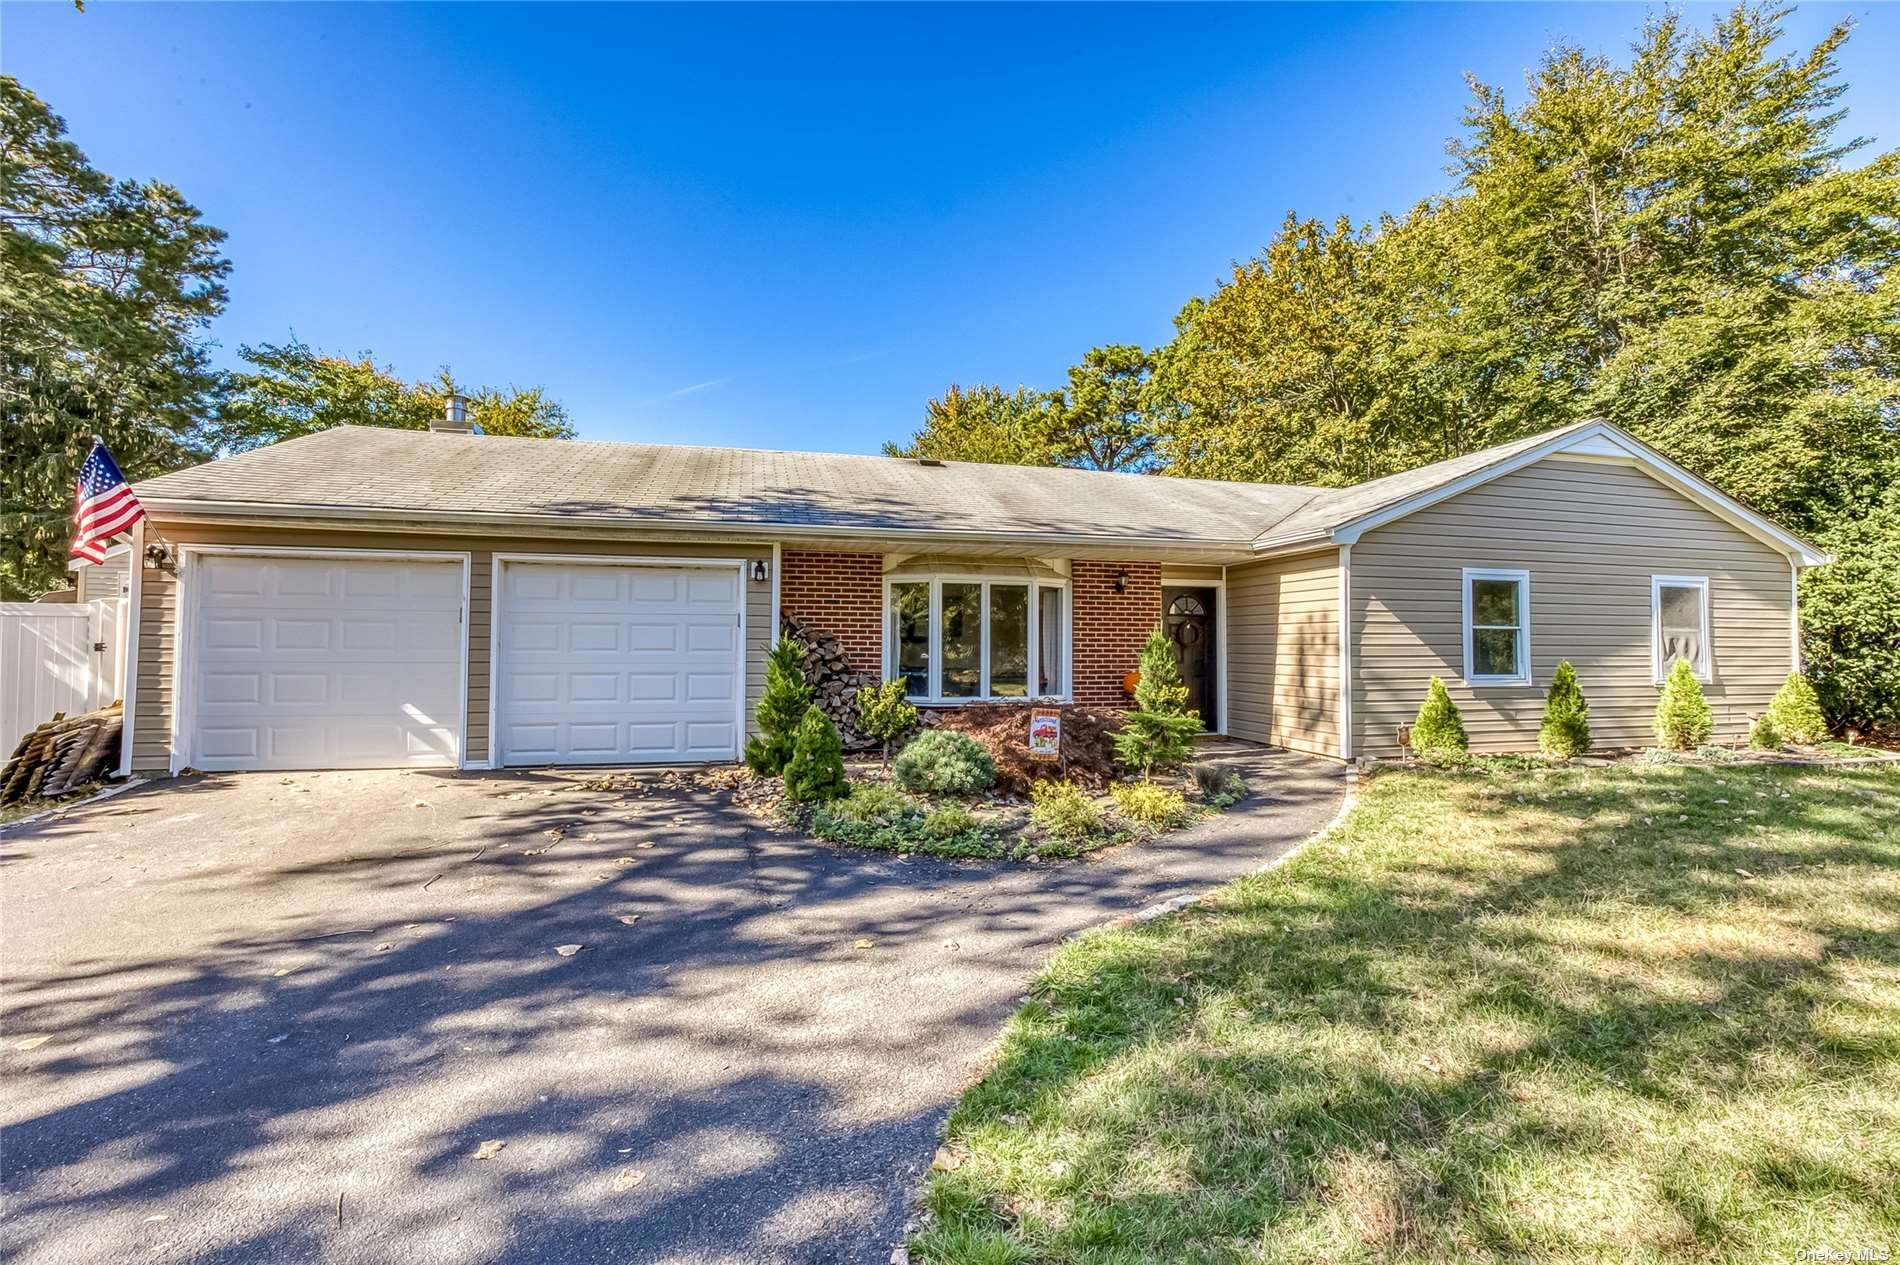 Photo of 176 Wading River Hol Road, Middle Island, NY 11953 (MLS # 3354709)